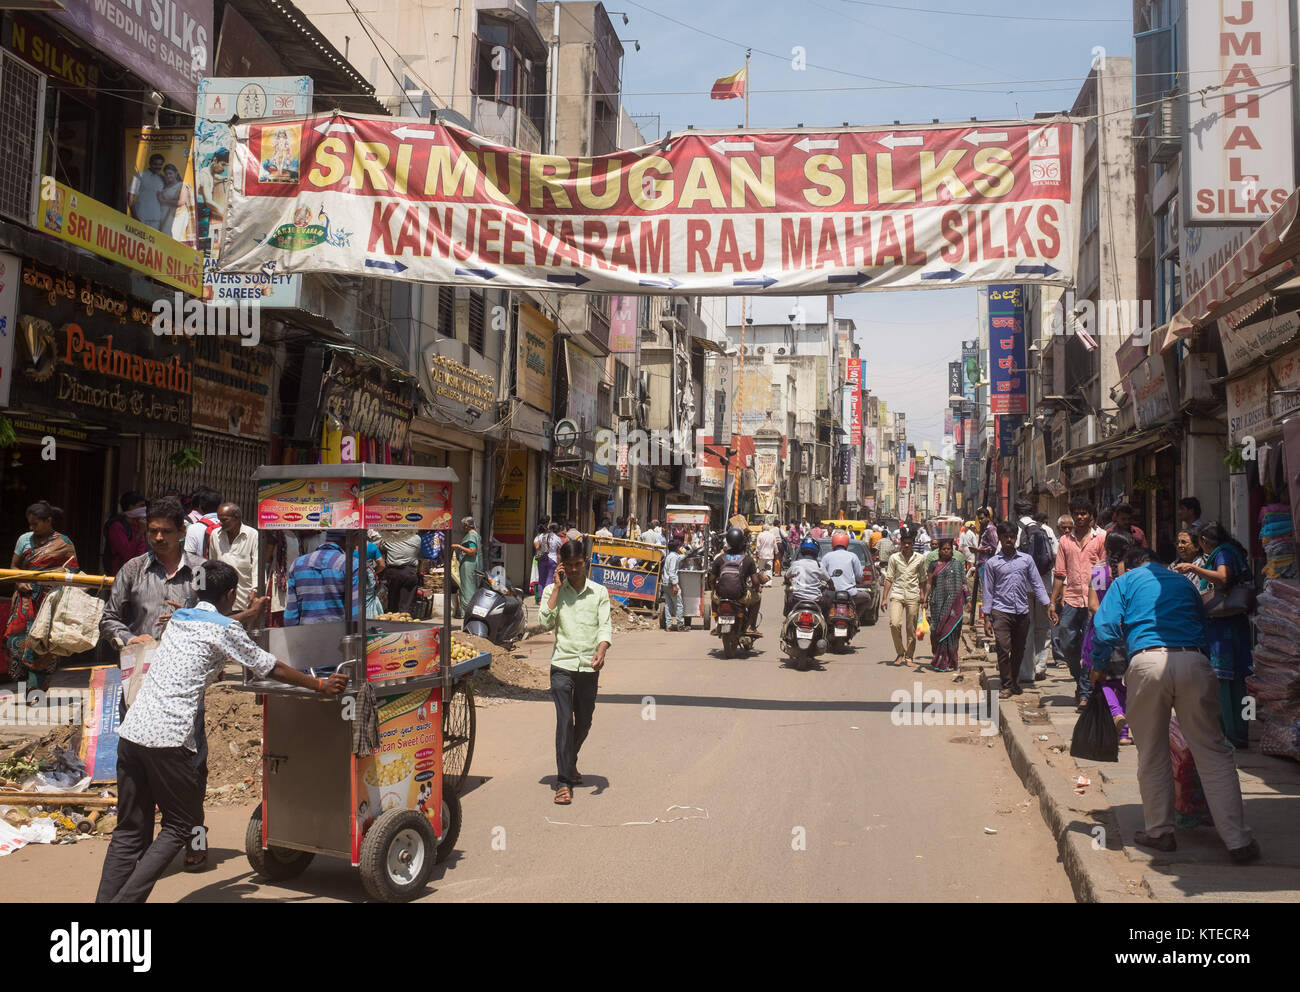 Crowd of people and vehicles moving on street, banner hanging over street in Bangalore, Bengaluru, Karnataka, India, - Stock Image